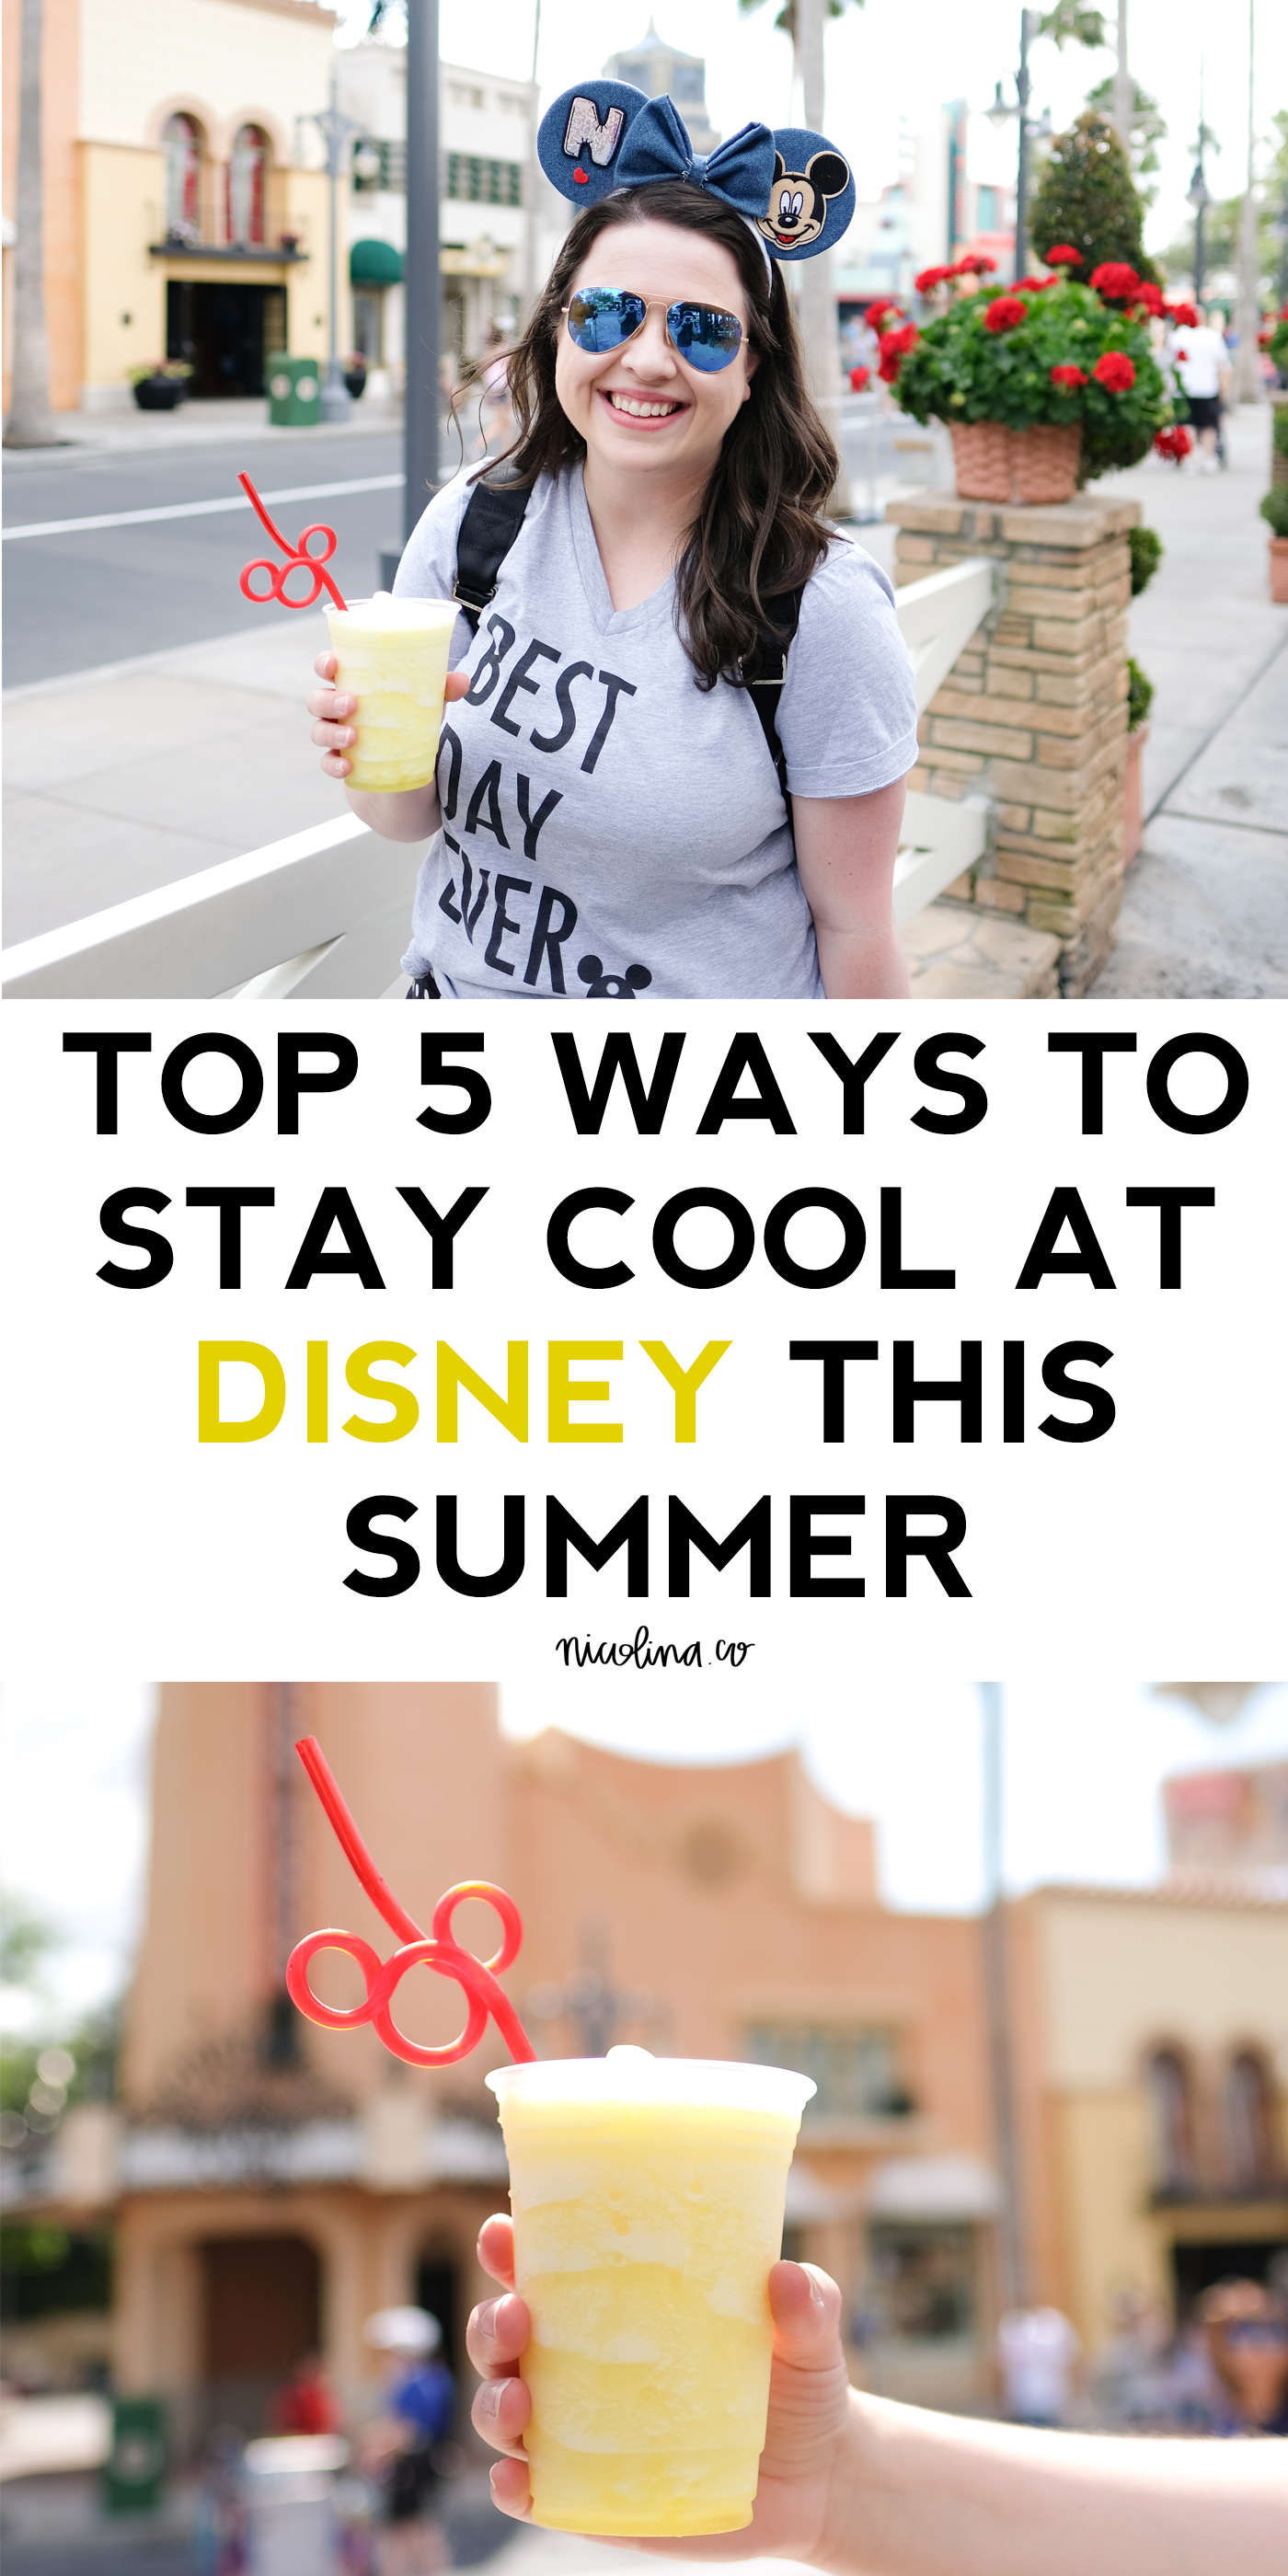 Top 5 Ways to Stay Cool in Disney this Summer